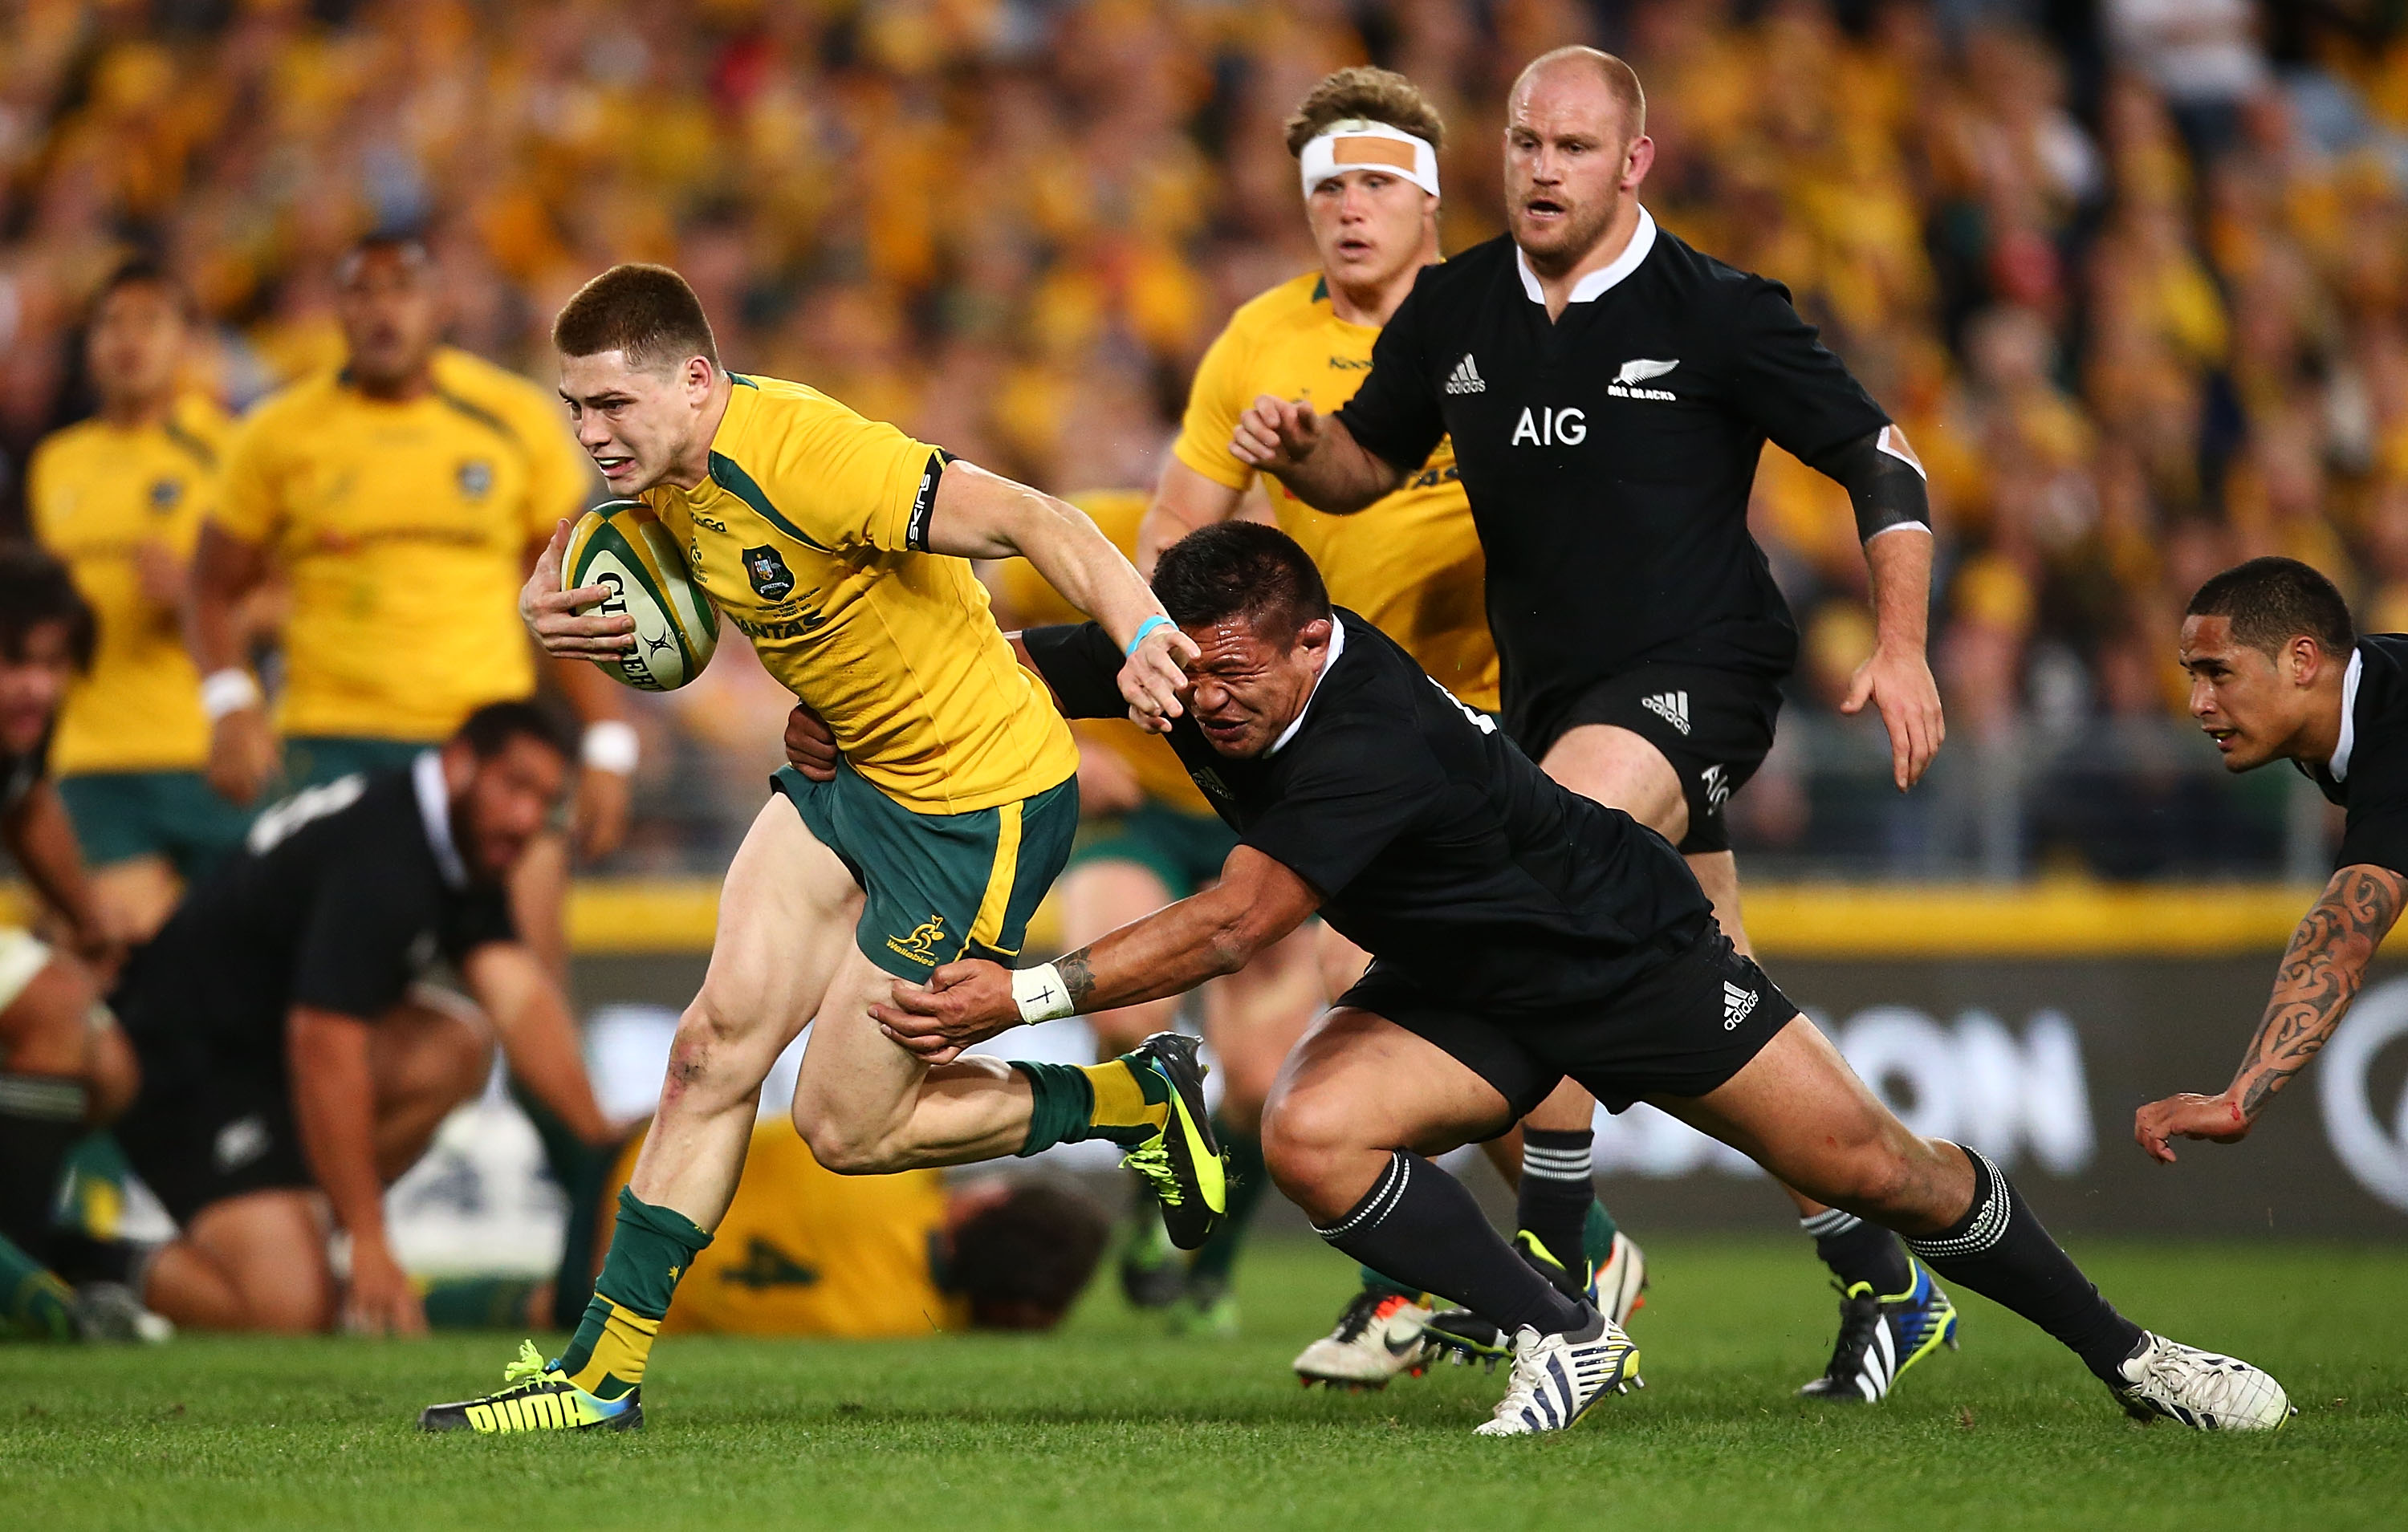 james o'connor playing for australia